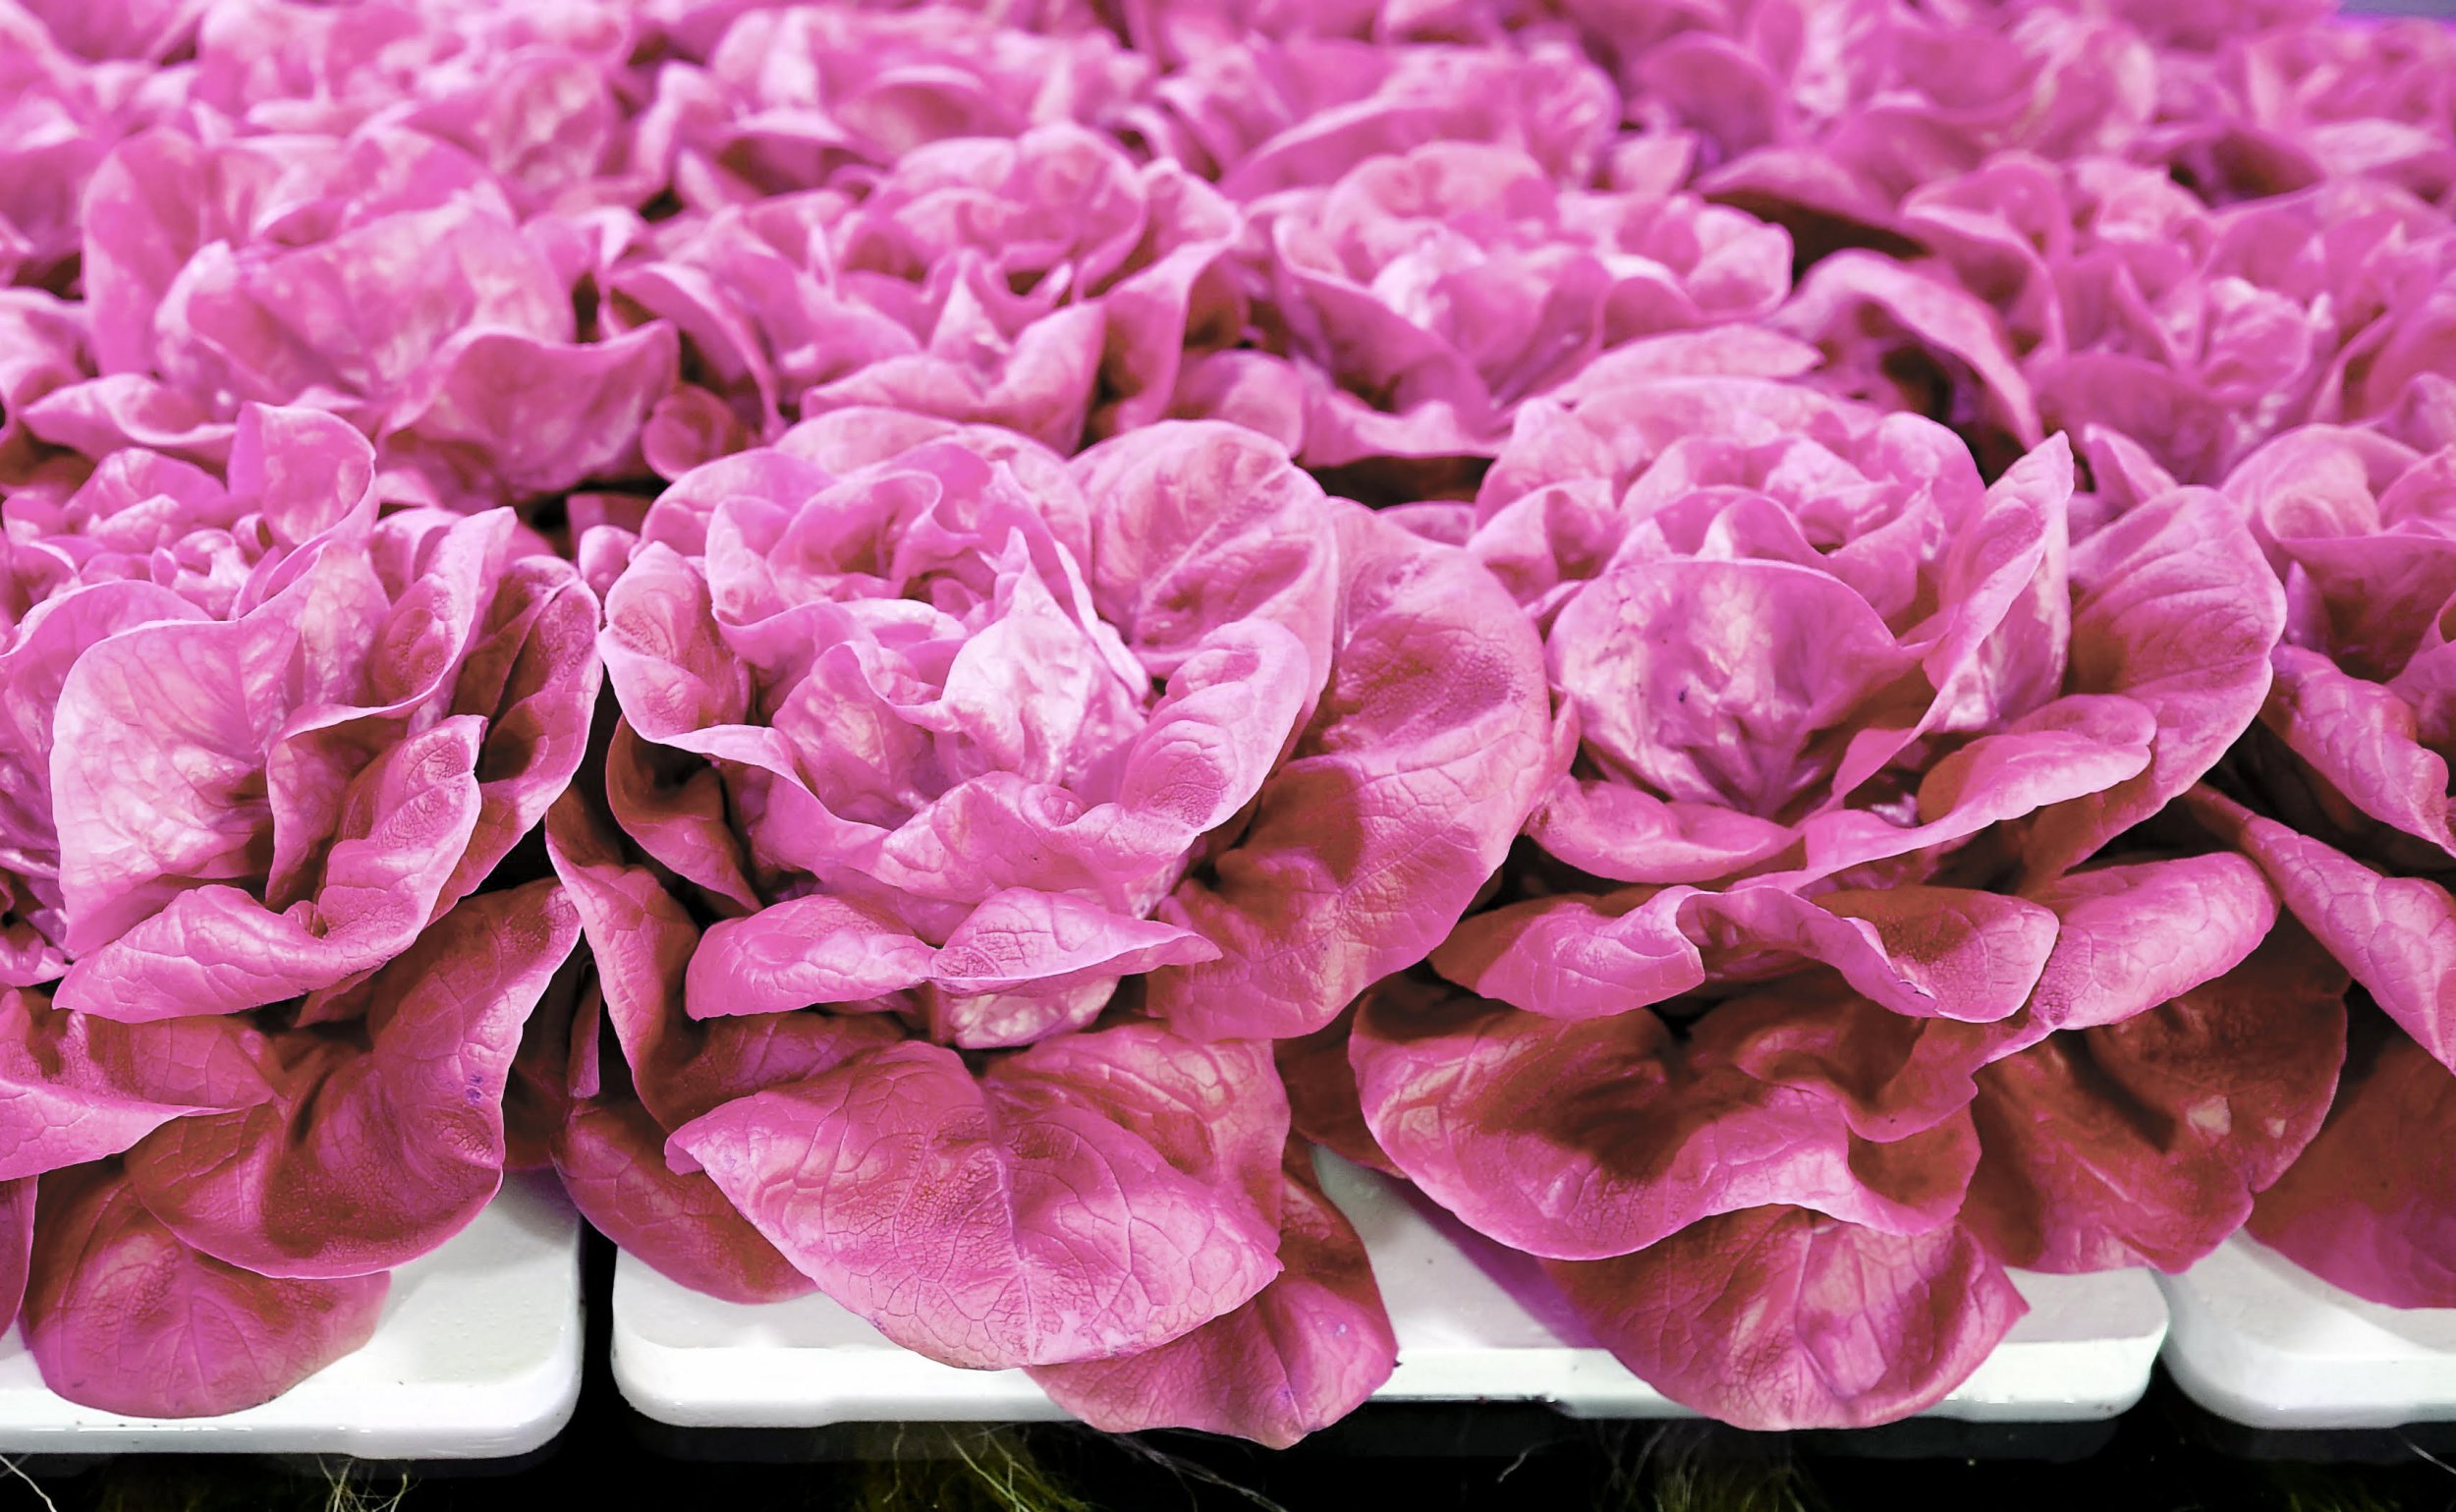 What Is Pink Lettuce Meet Instagrams New Photo Friendly Food